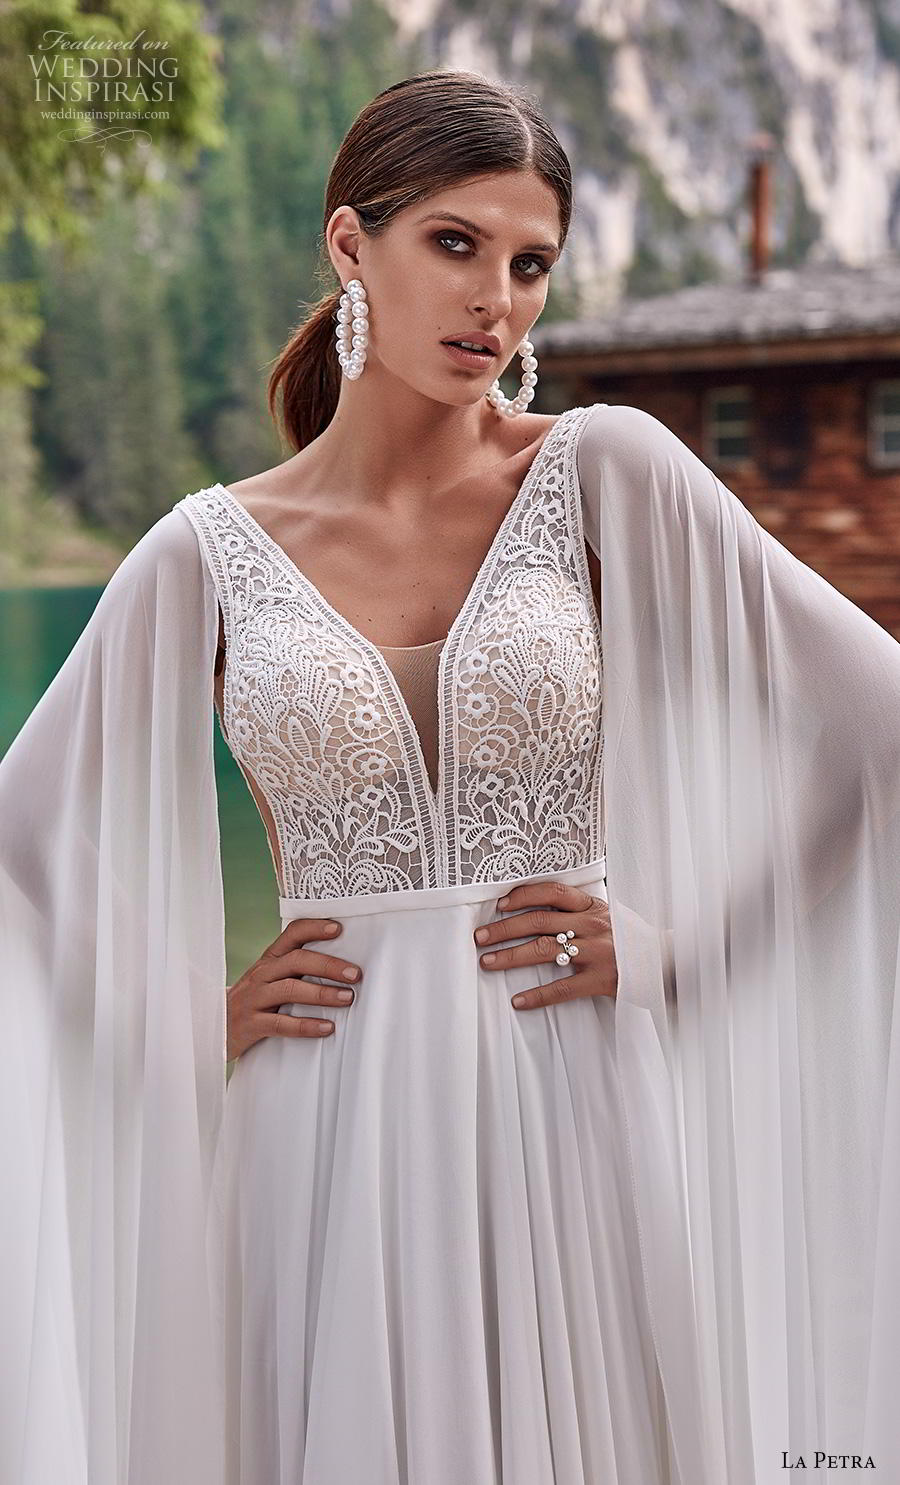 la petra 2020 bridal long hanging sleeves thick strap deep v neck heavily embellished bodice elegant grecian modified a  line wedding dress backless v back short train (1) zv